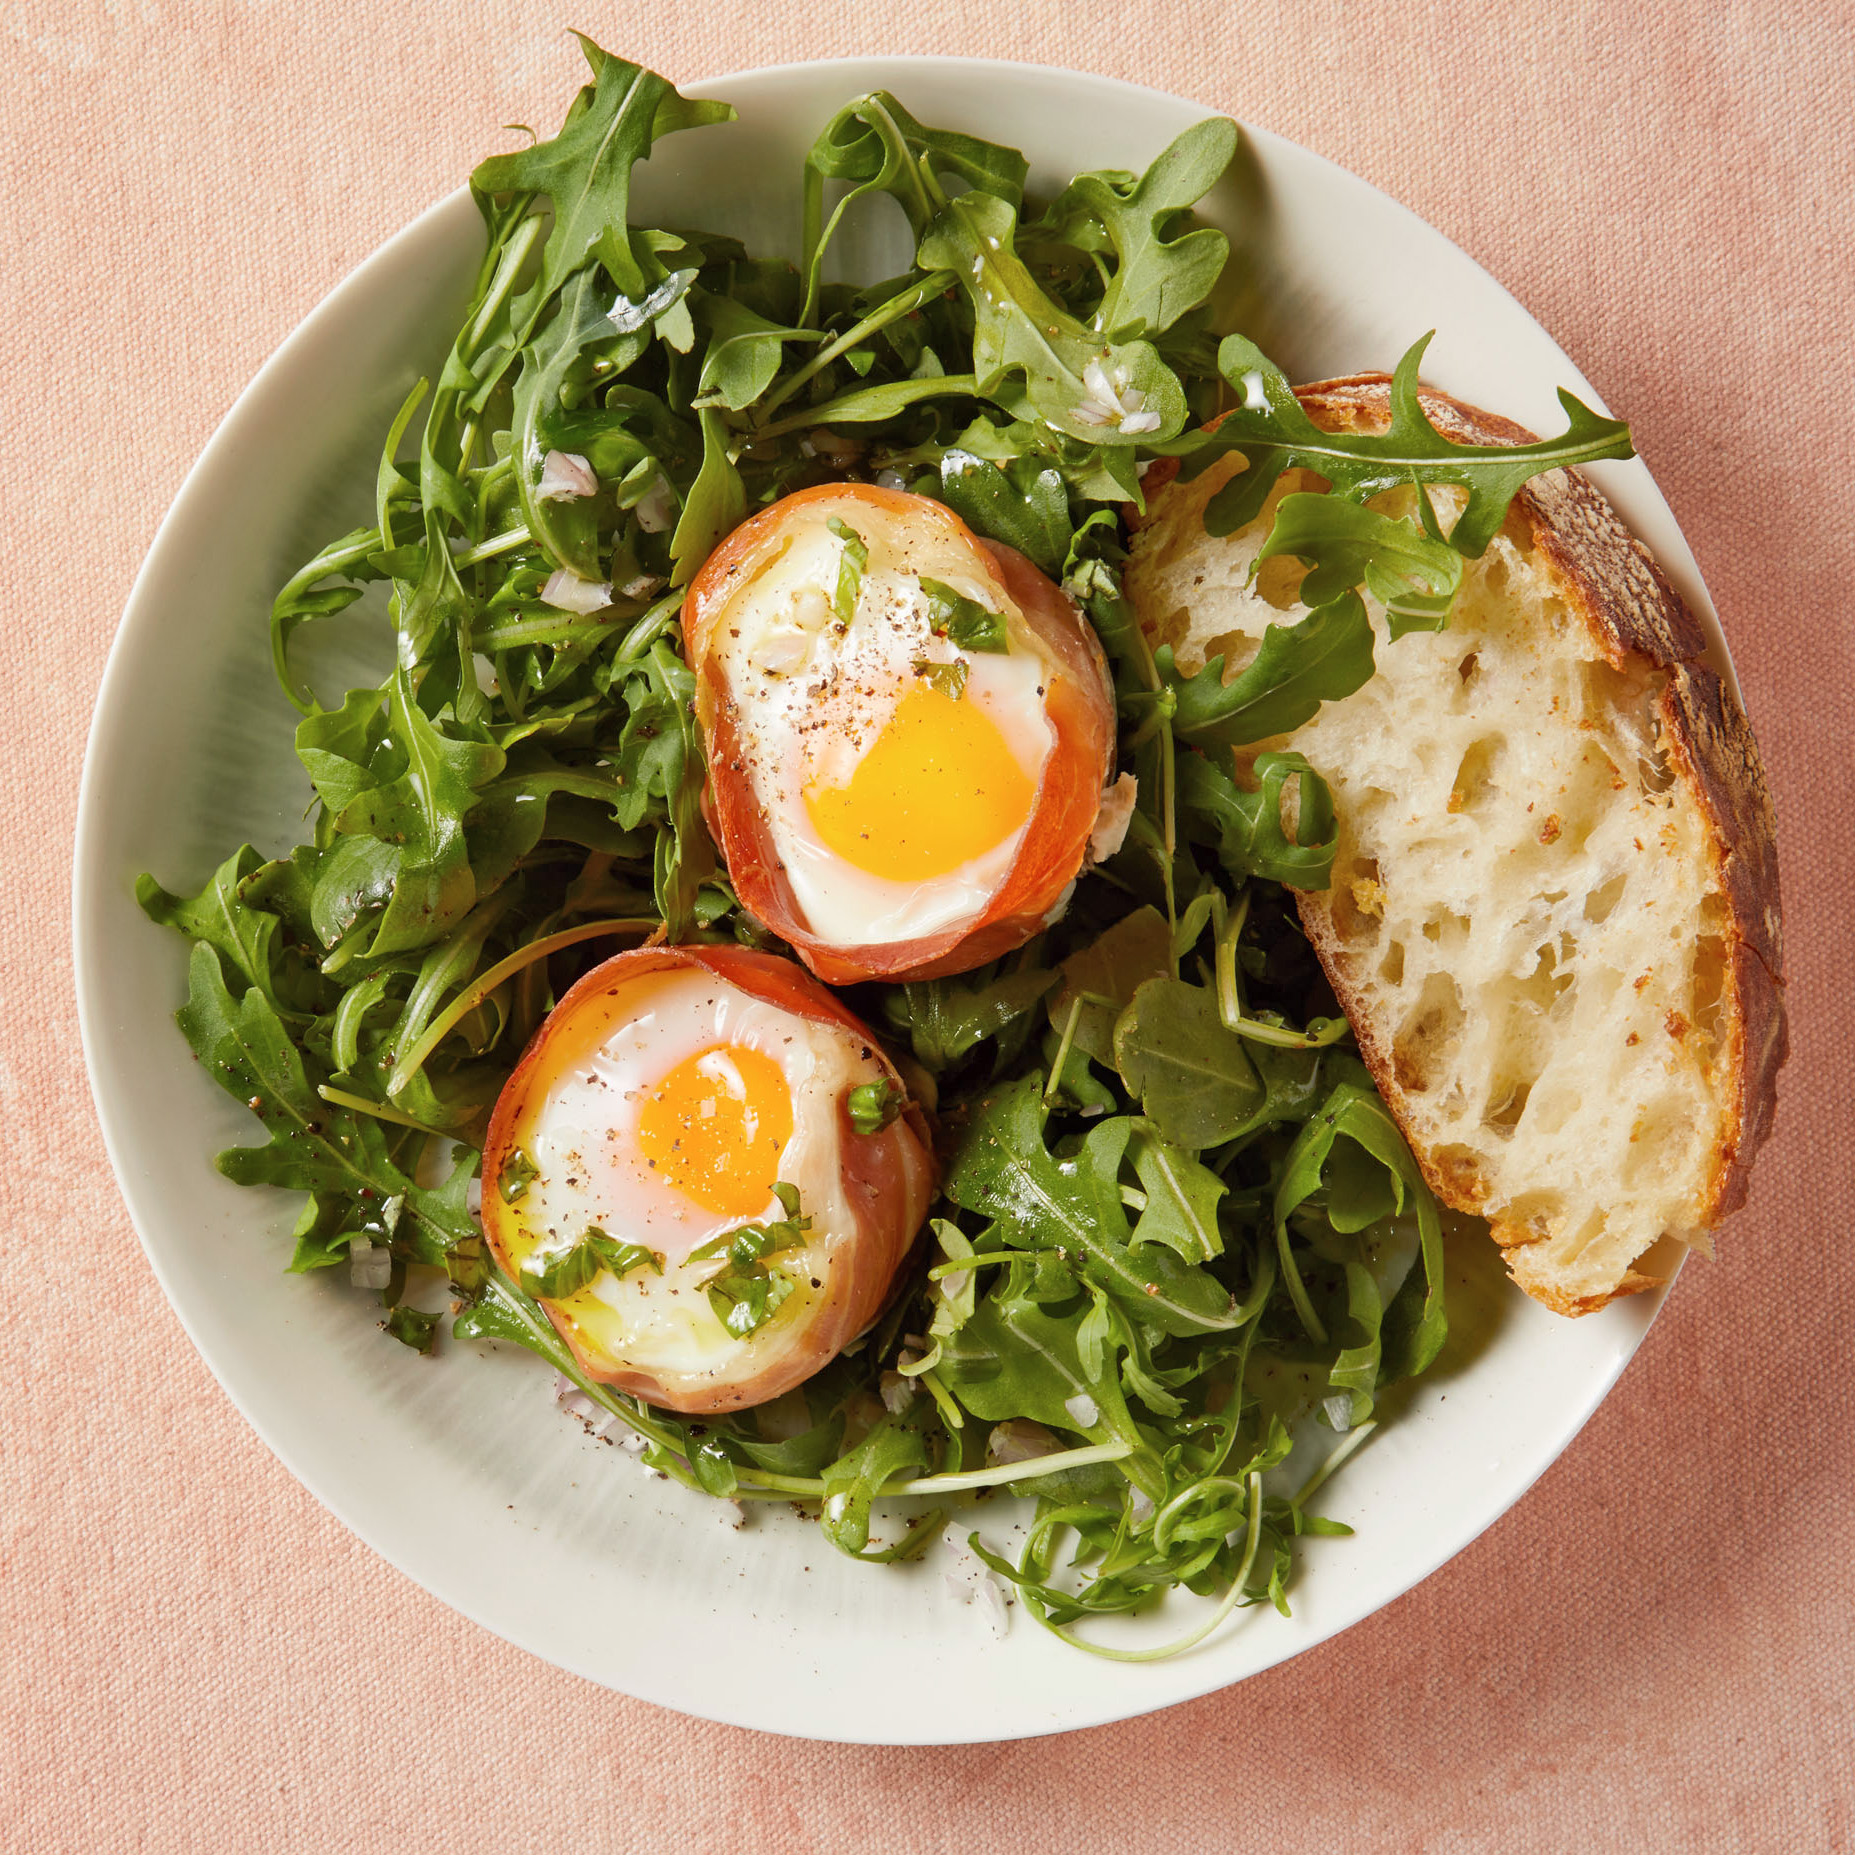 prosciutto-wrapped baked eggs on arugula